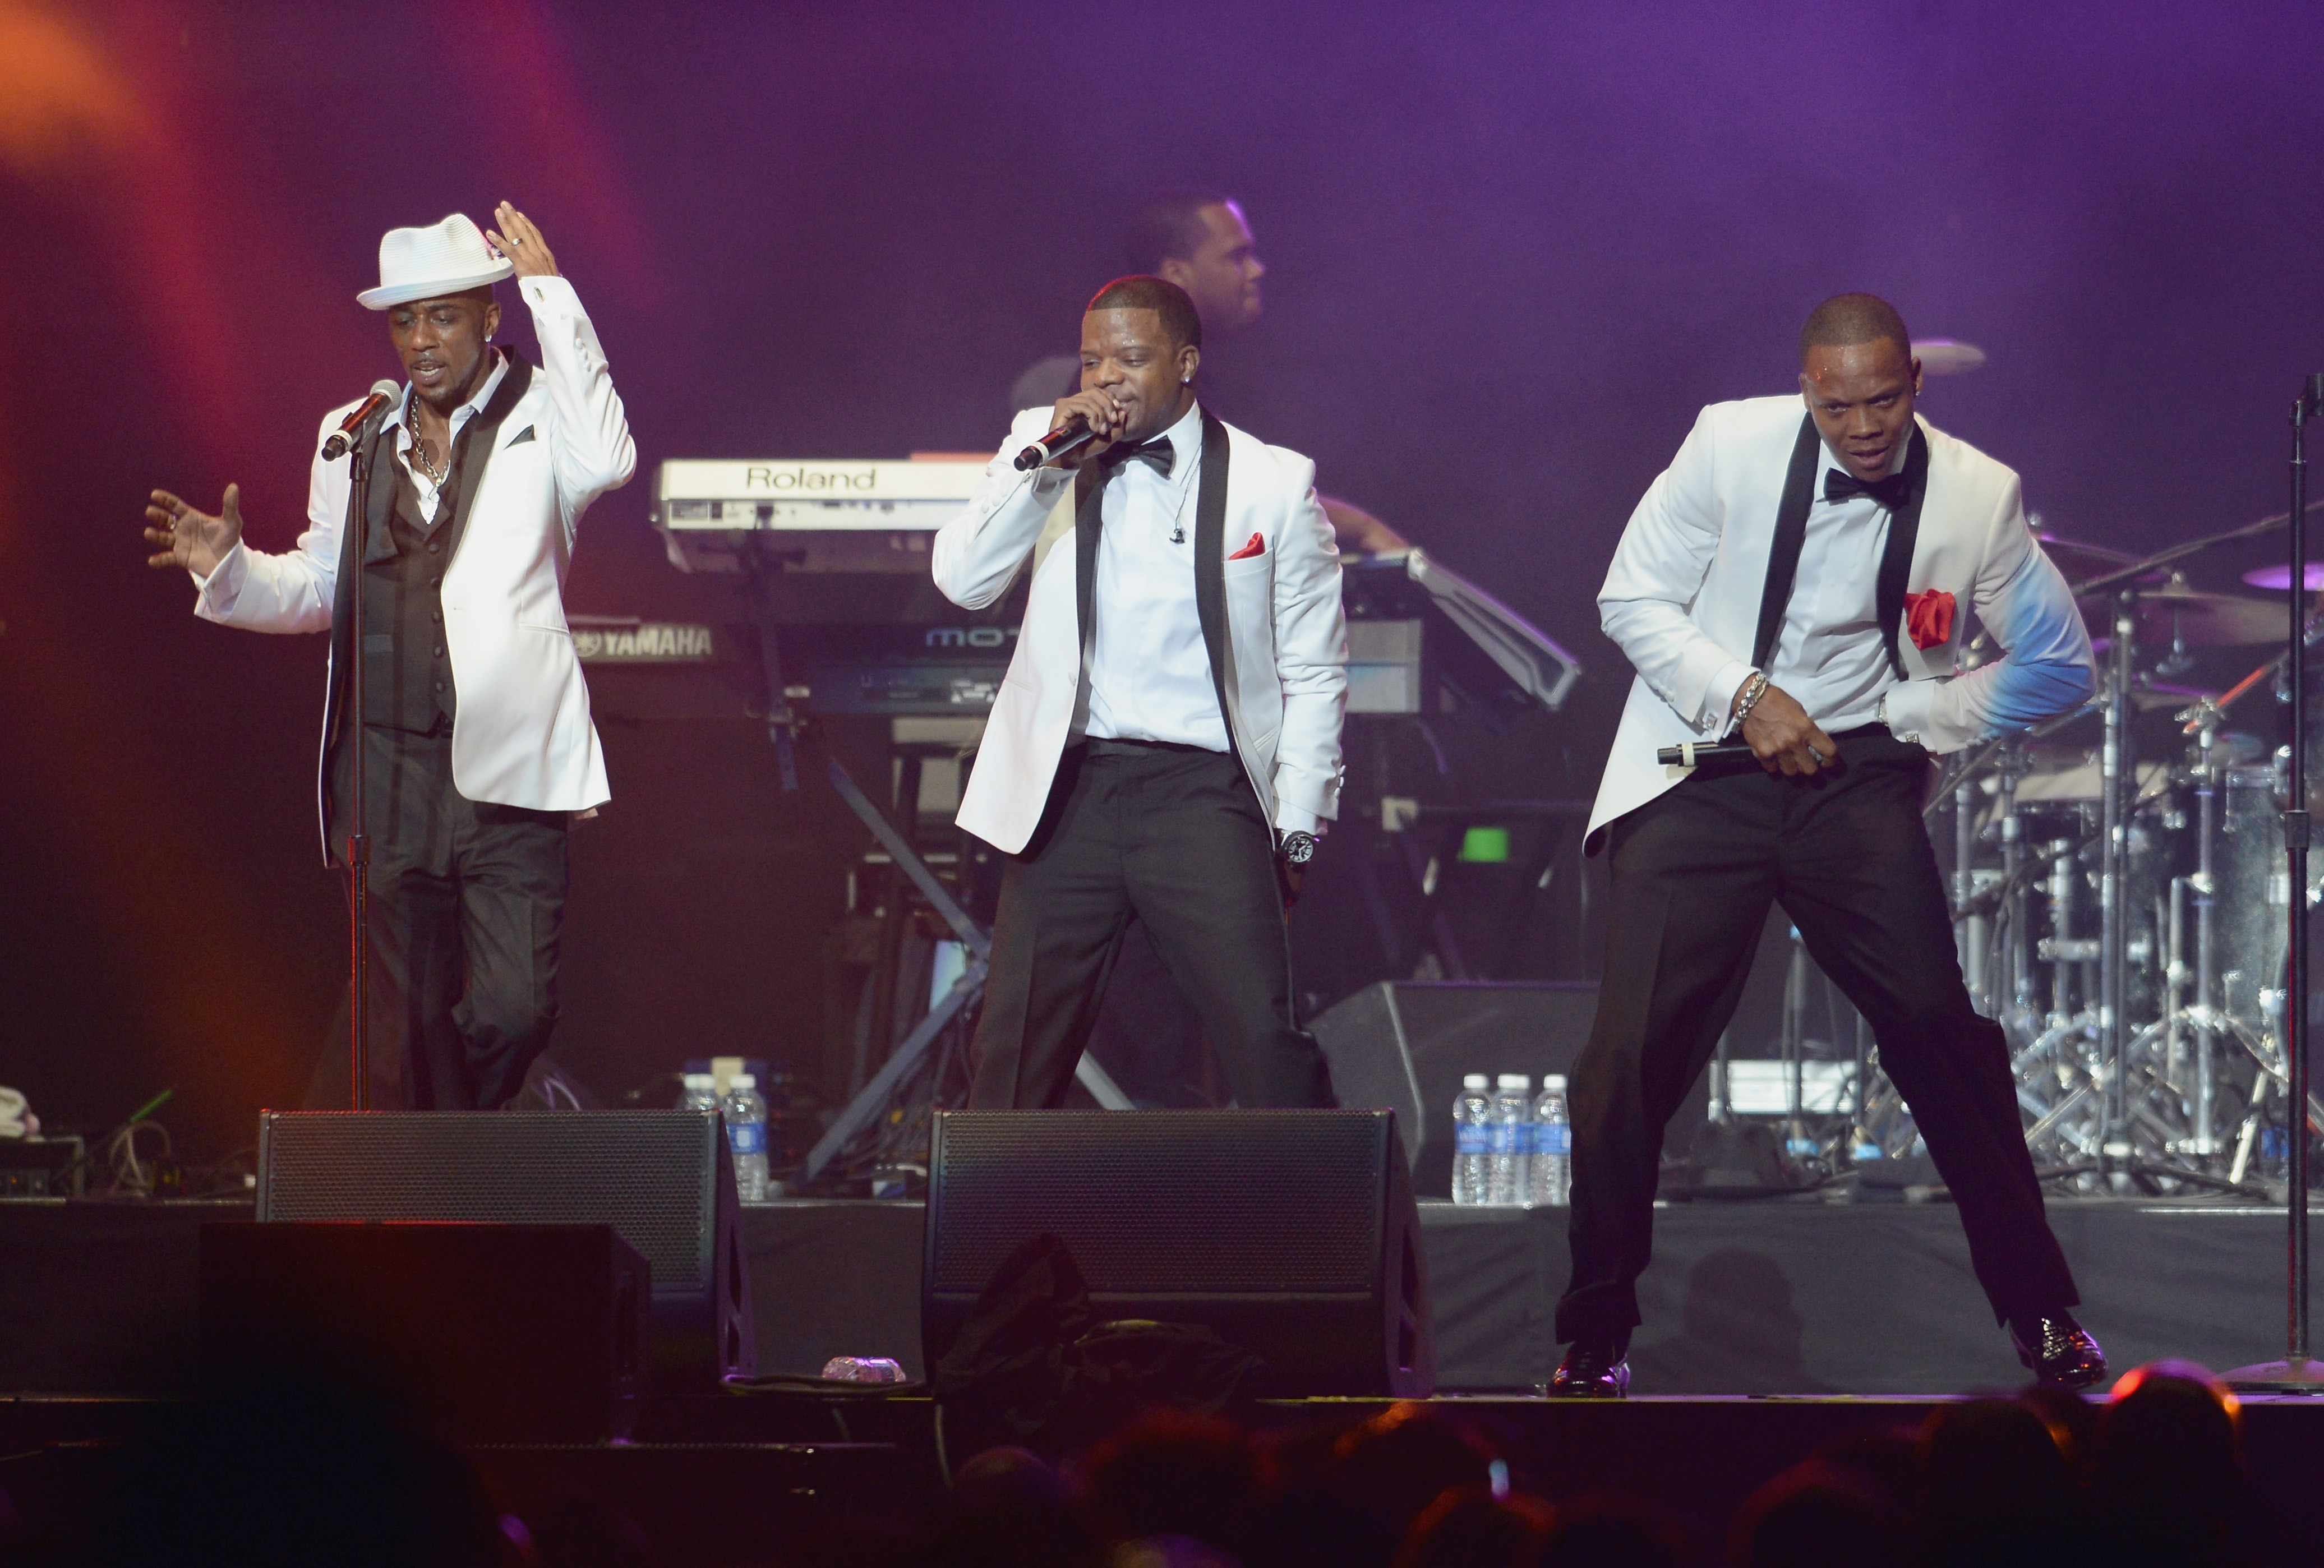 New edition performance on bet awards binary options atm results of the voice